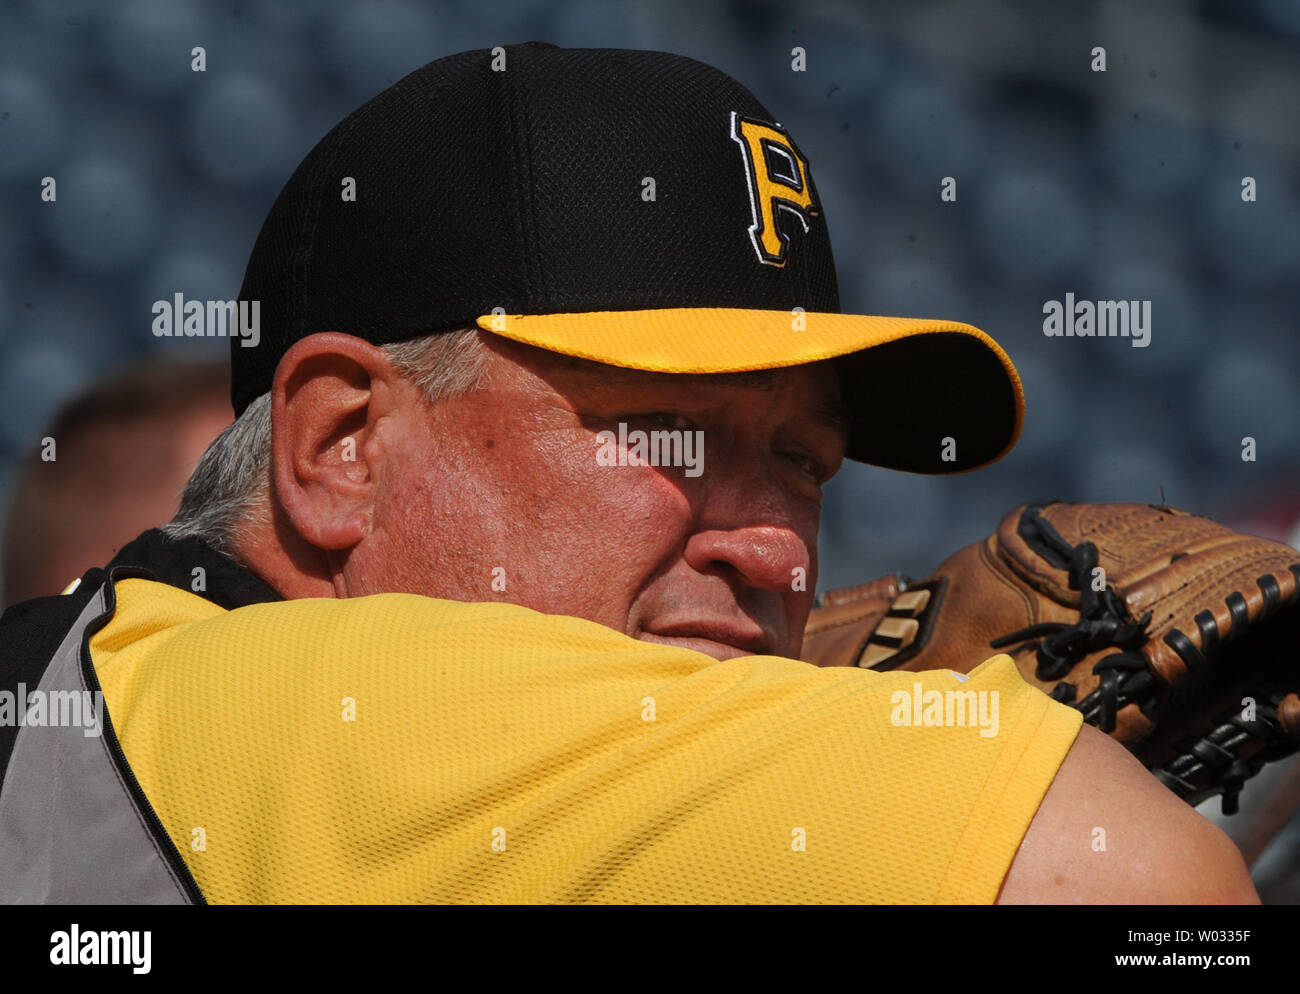 Pittsburgh Pirates Manager Clint Hurdle watches batting